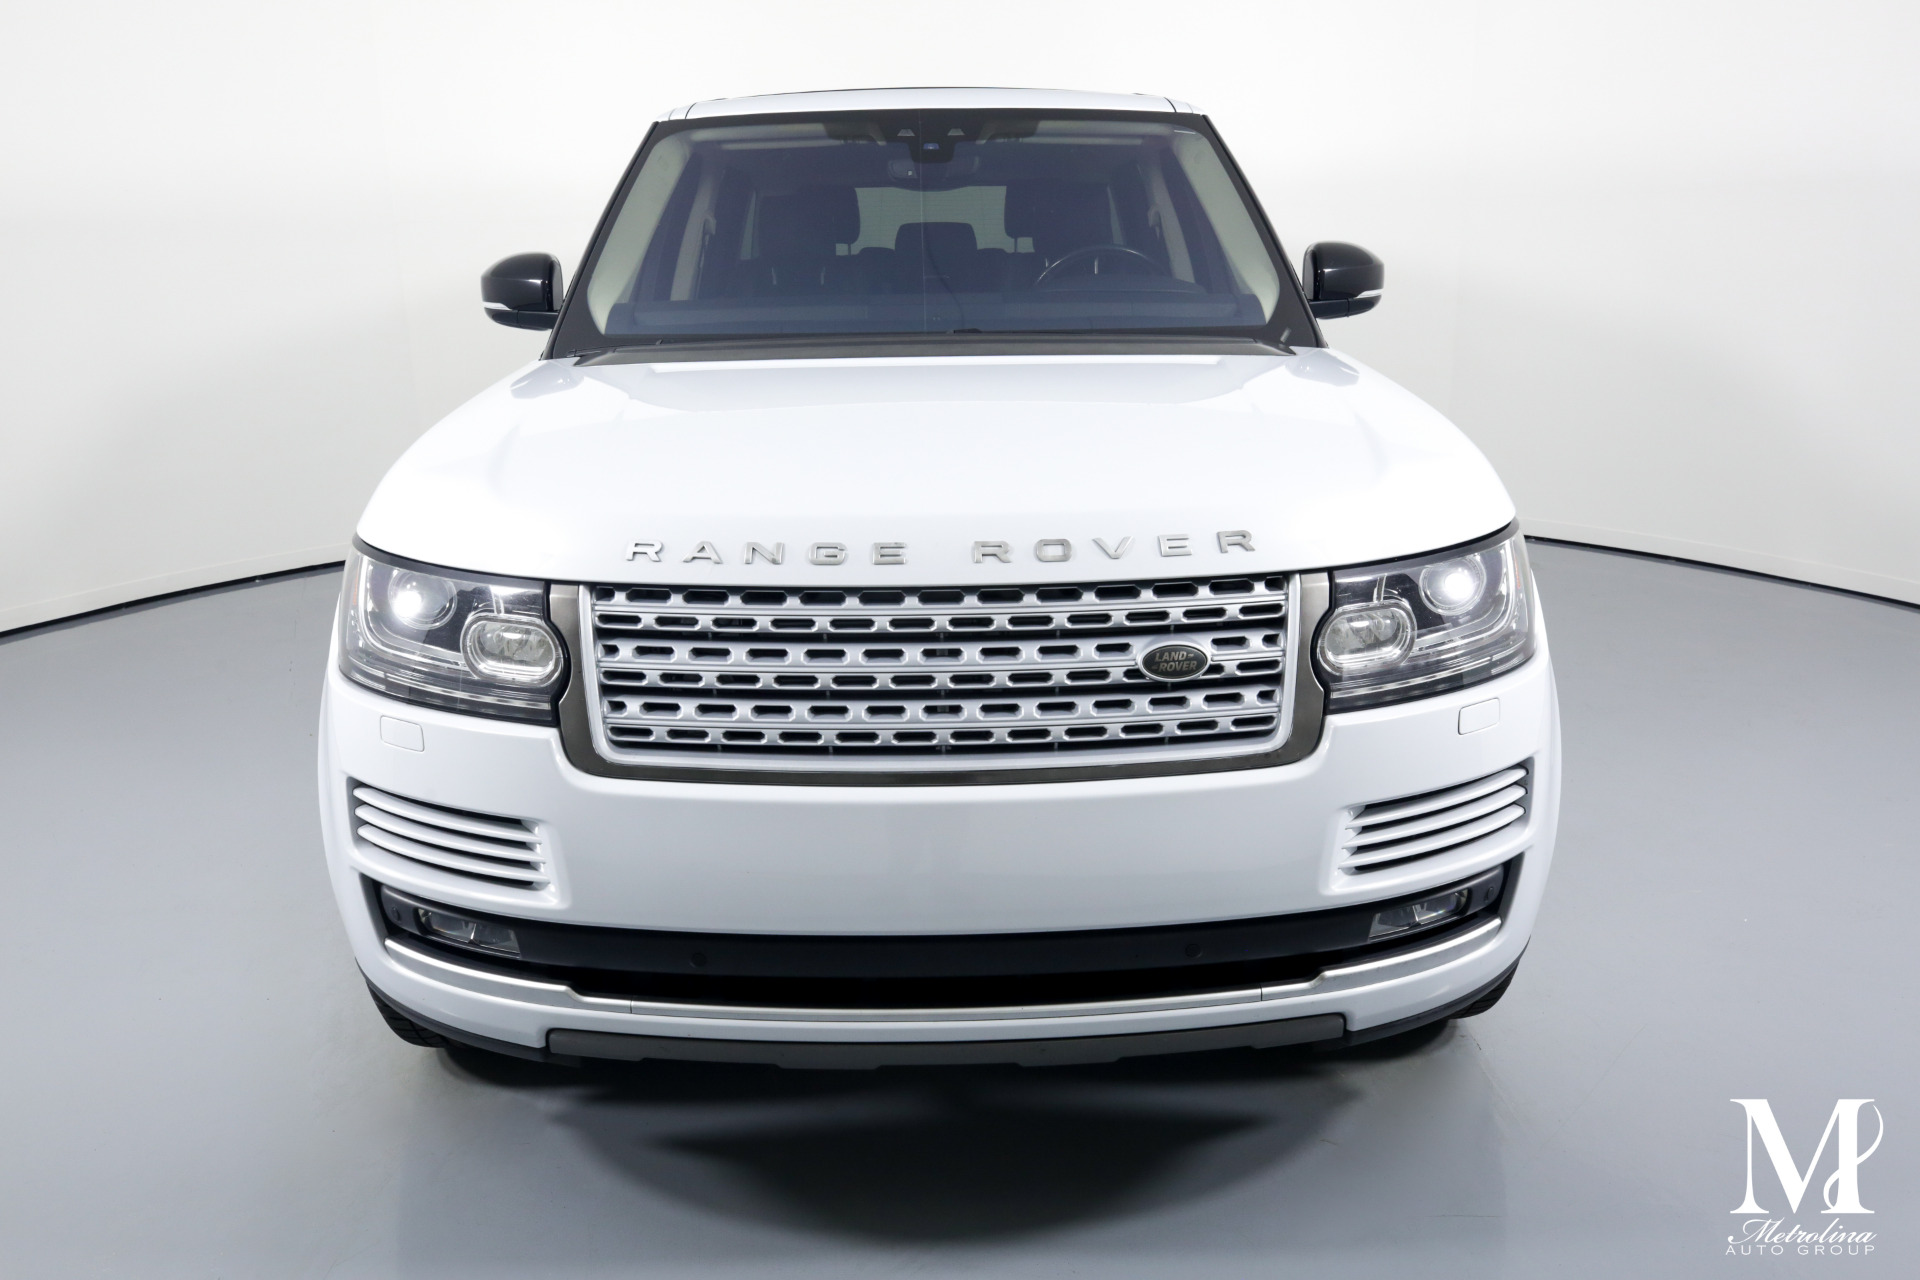 Used 2017 Land Rover Range Rover Supercharged LWB for sale $69,996 at Metrolina Auto Group in Charlotte NC 28217 - 3